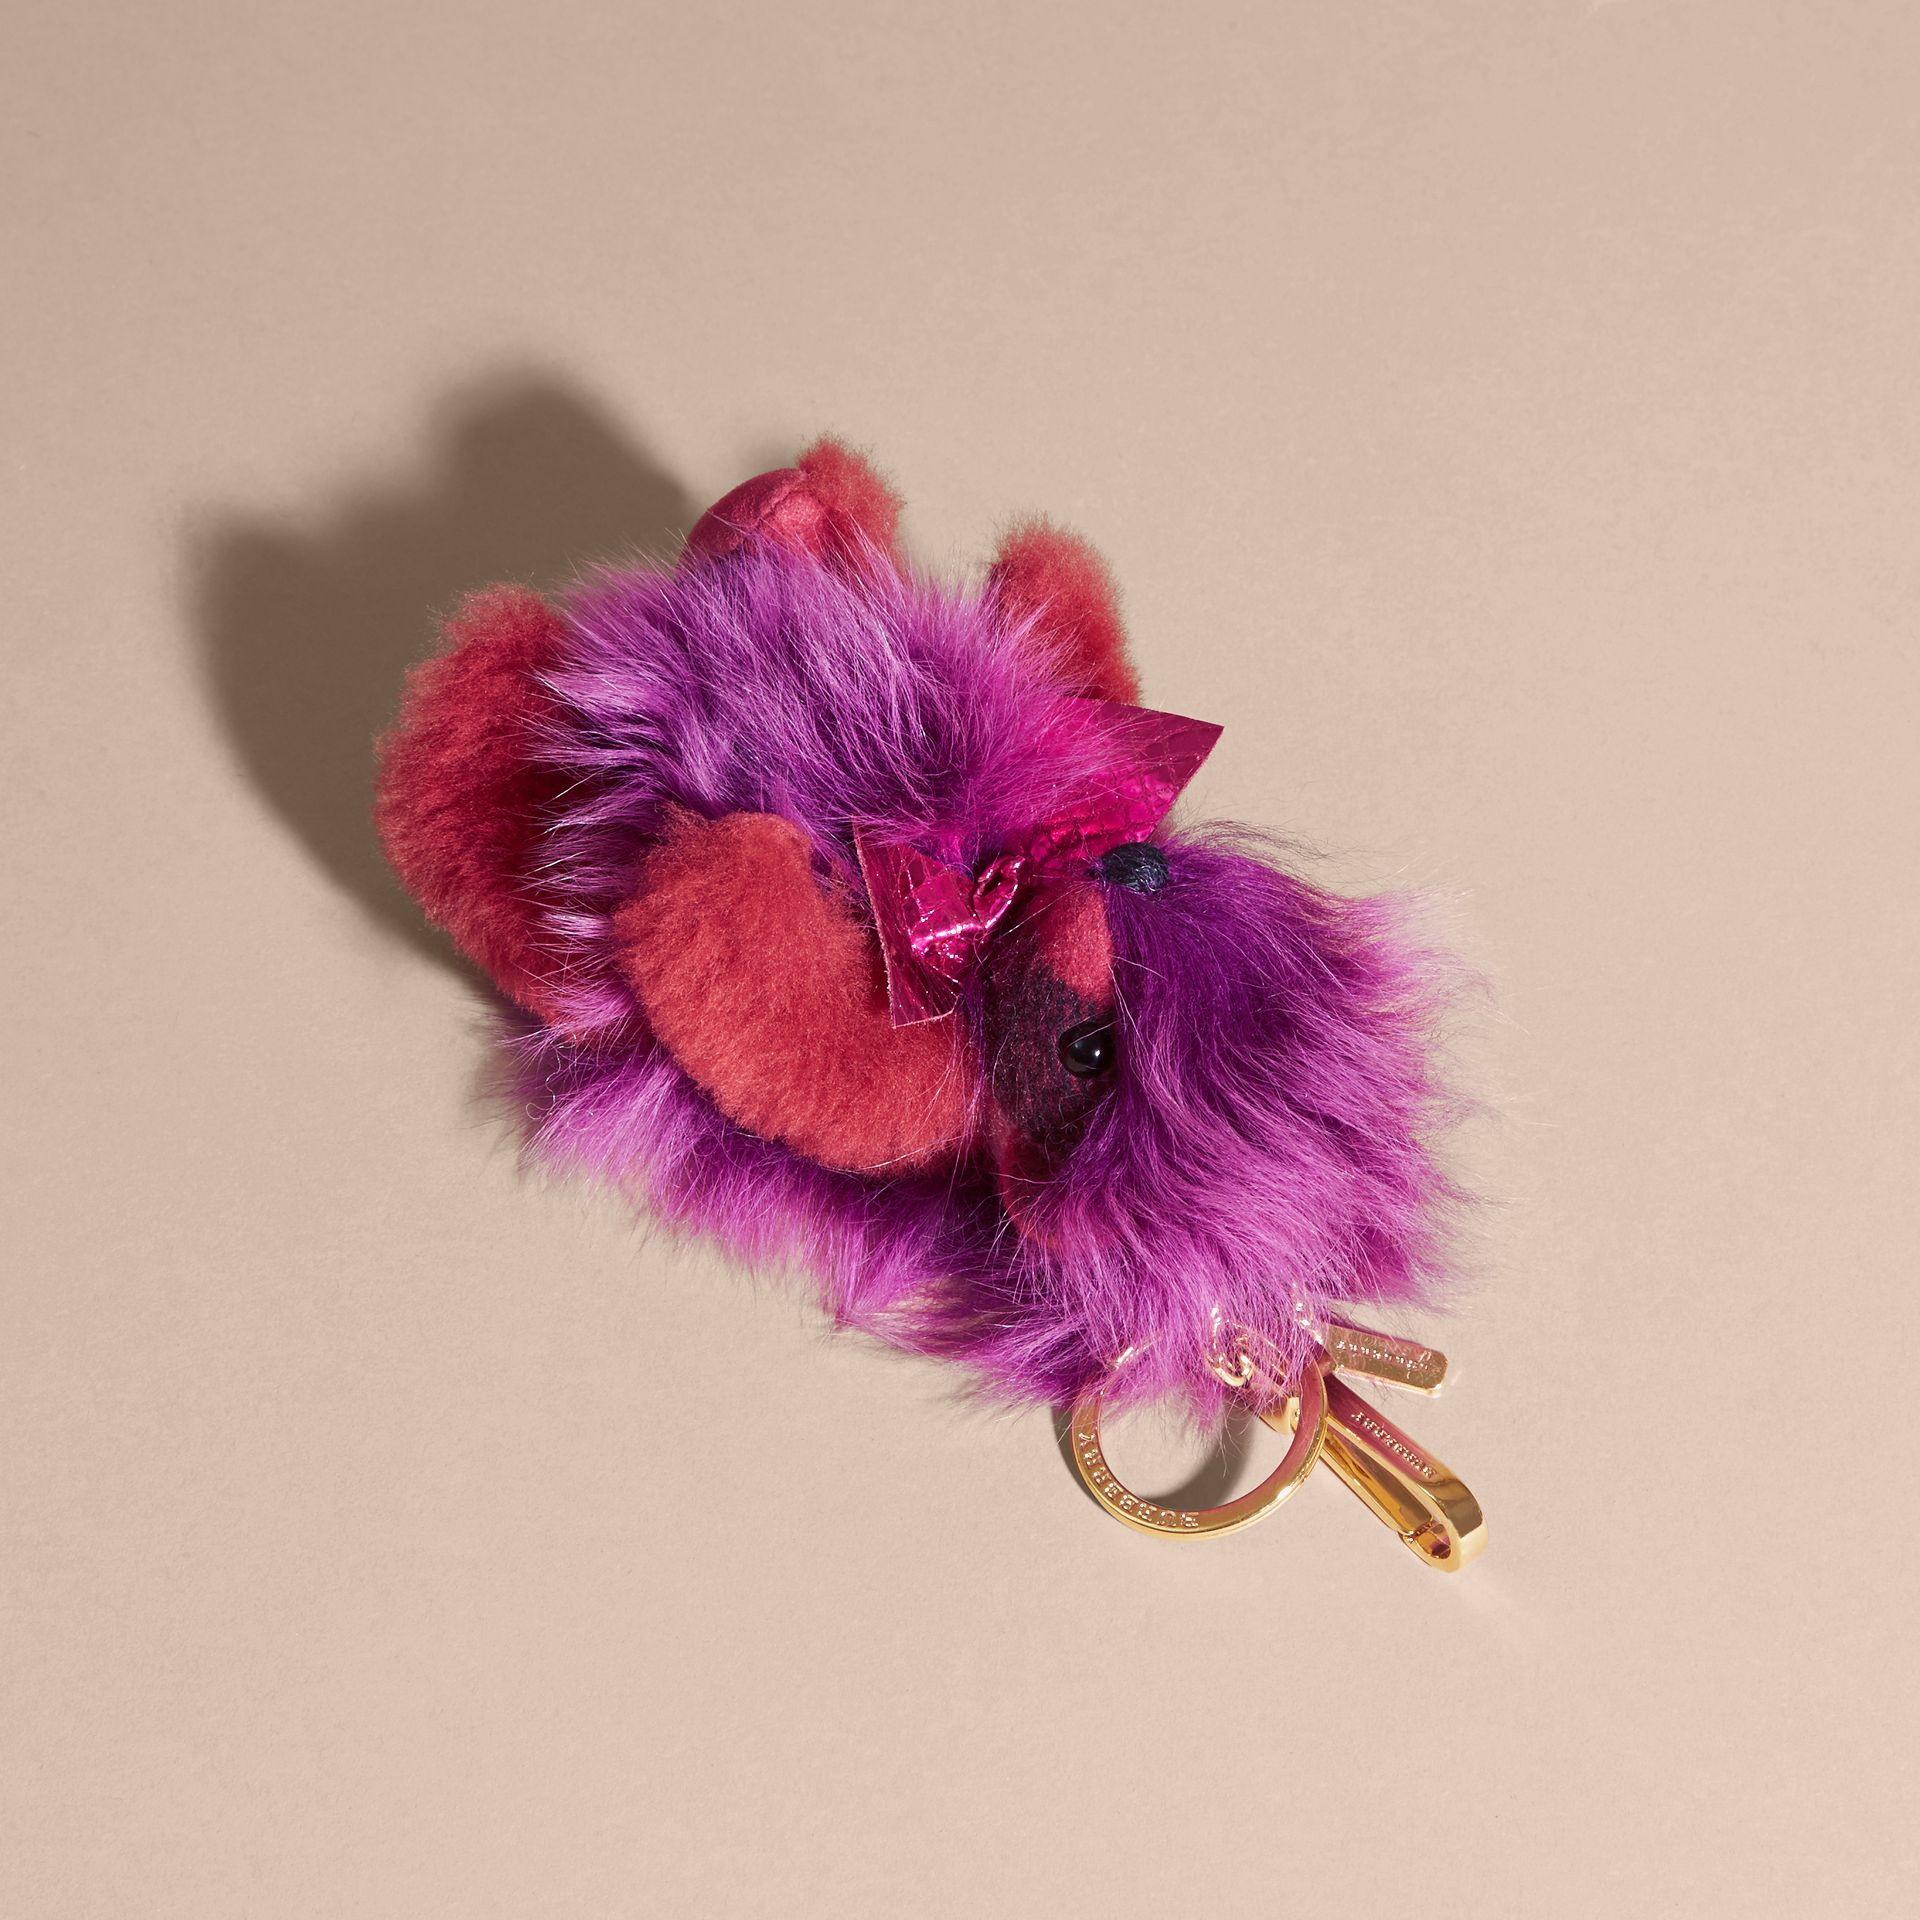 Thomas Bear Pom-Pom Charm in Check Cashmere in Fuchsia Pink - Women | Burberry United States - gallery image 3